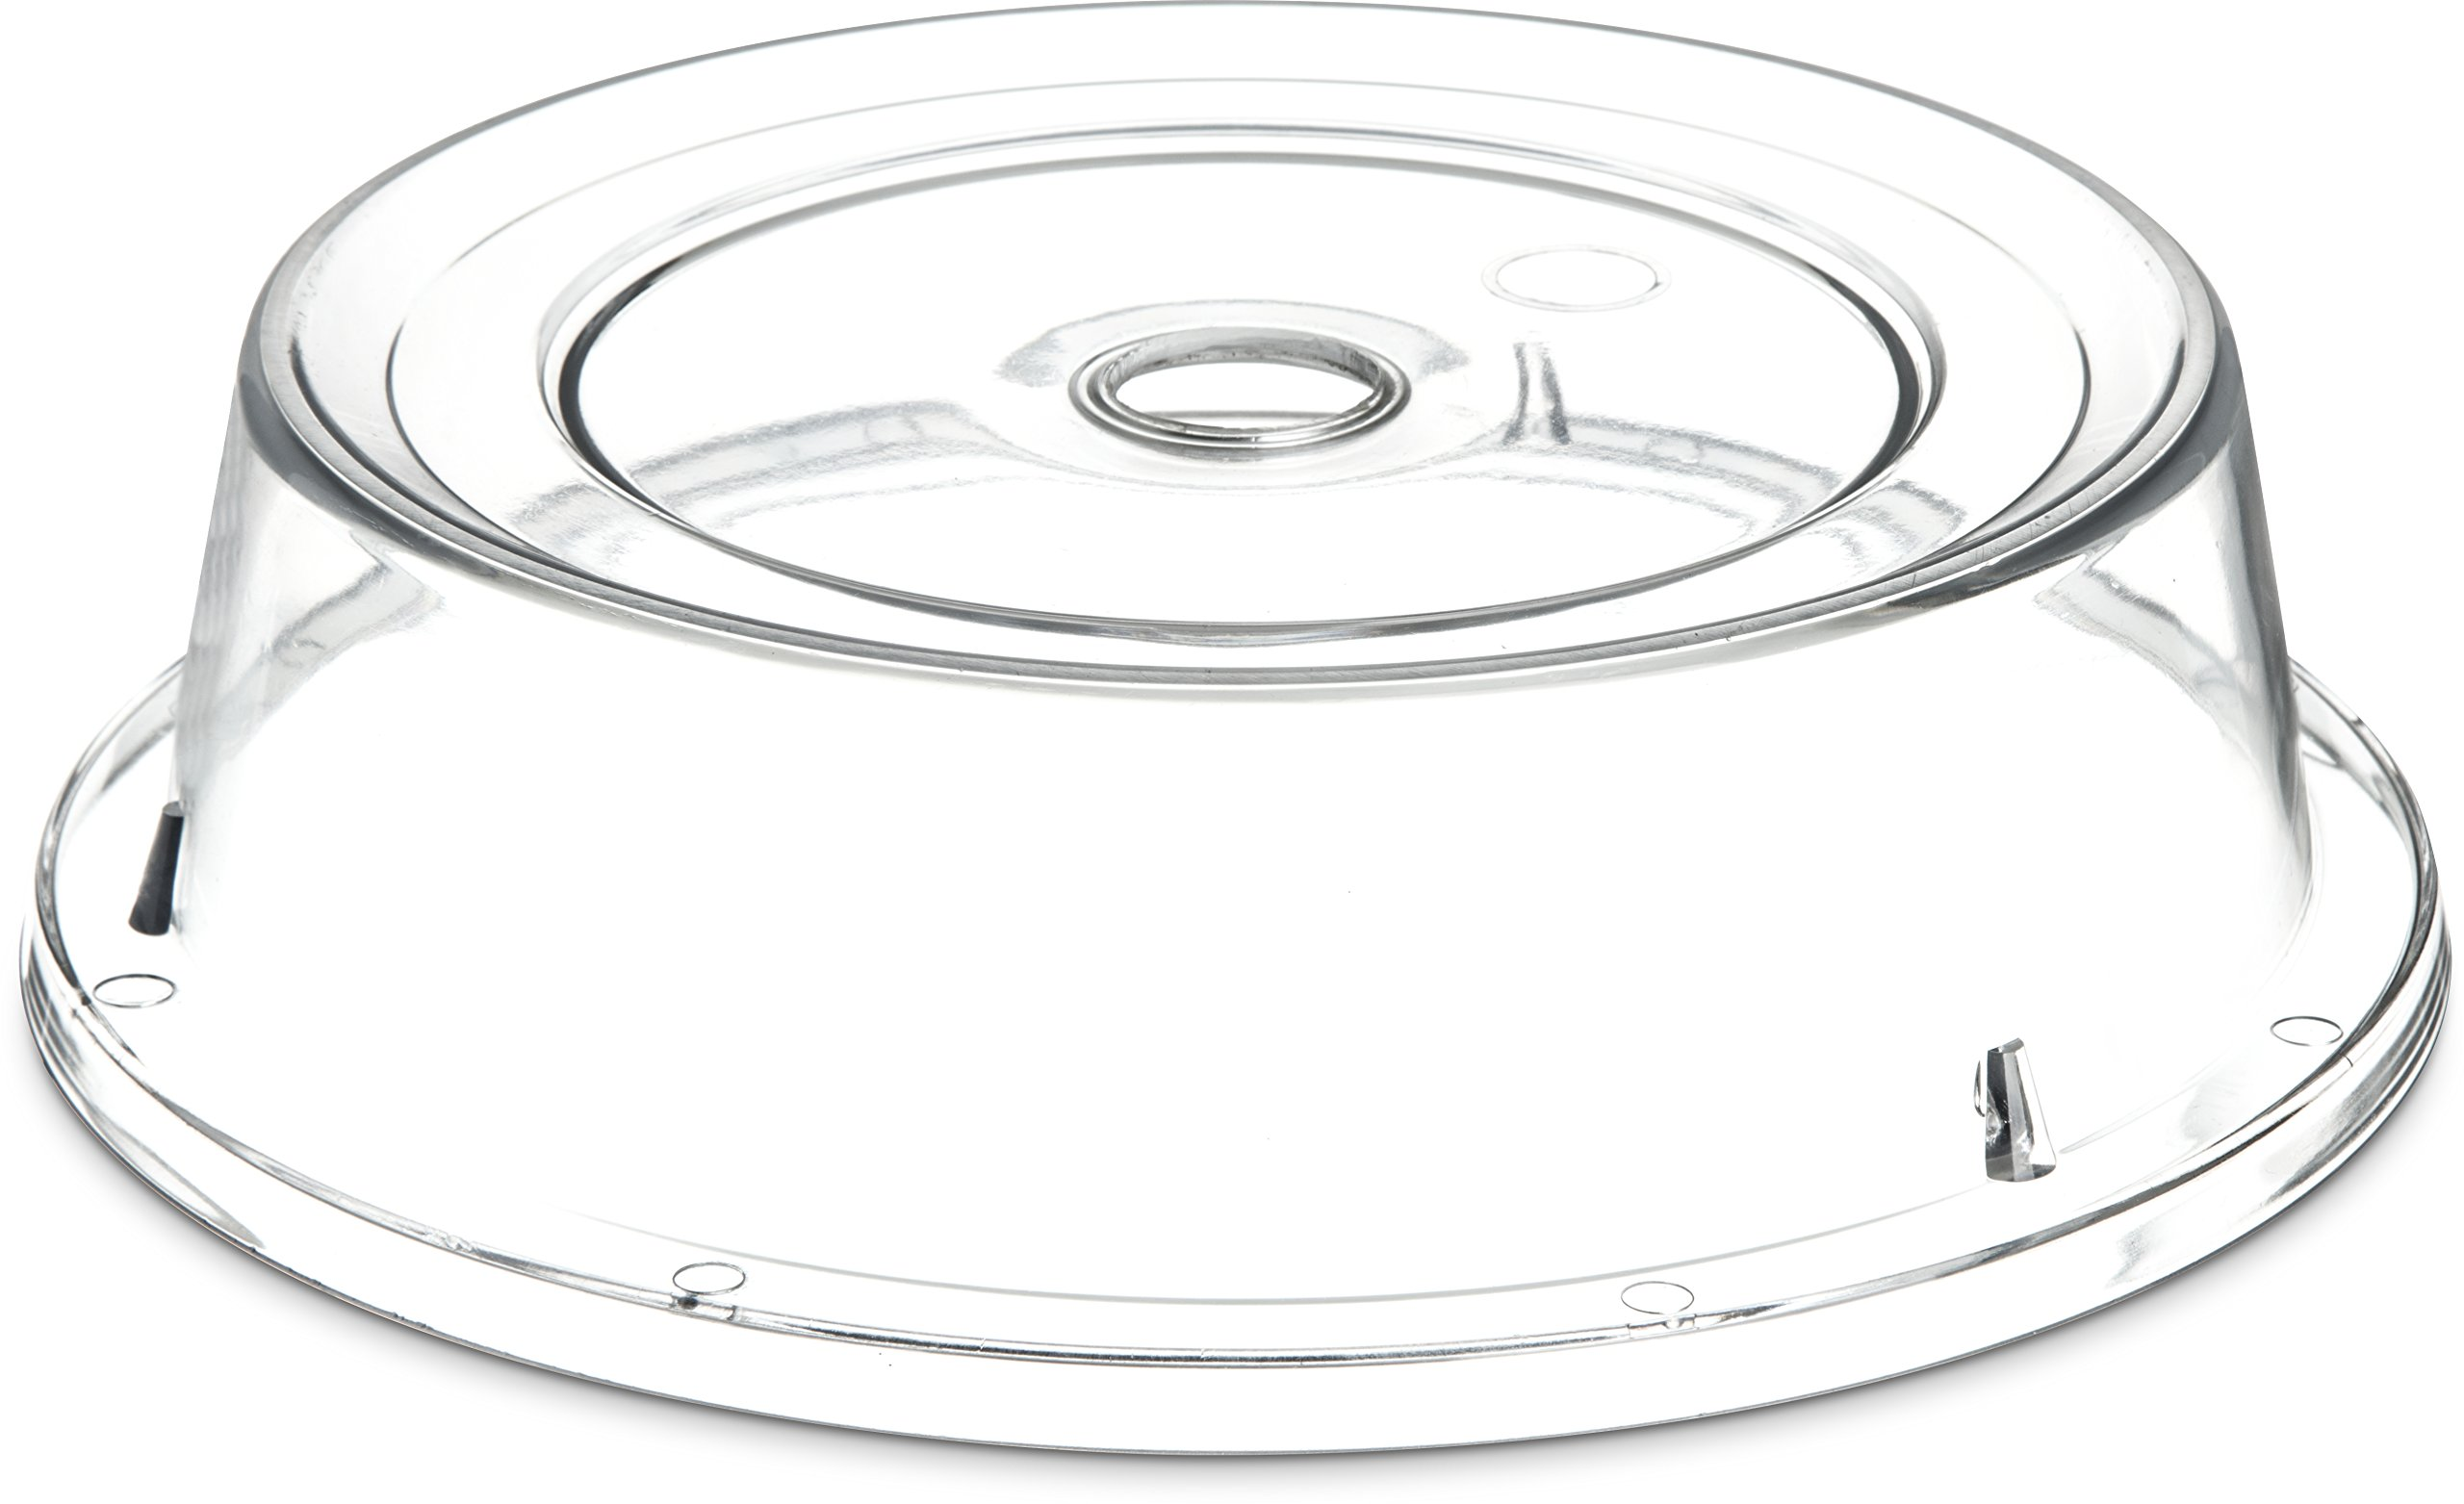 Carlisle 190007 Polycarbonate Plate Cover, 9.37'' Bottom Diameter x 2.56'' Height, Clear (Case of 12) by Carlisle